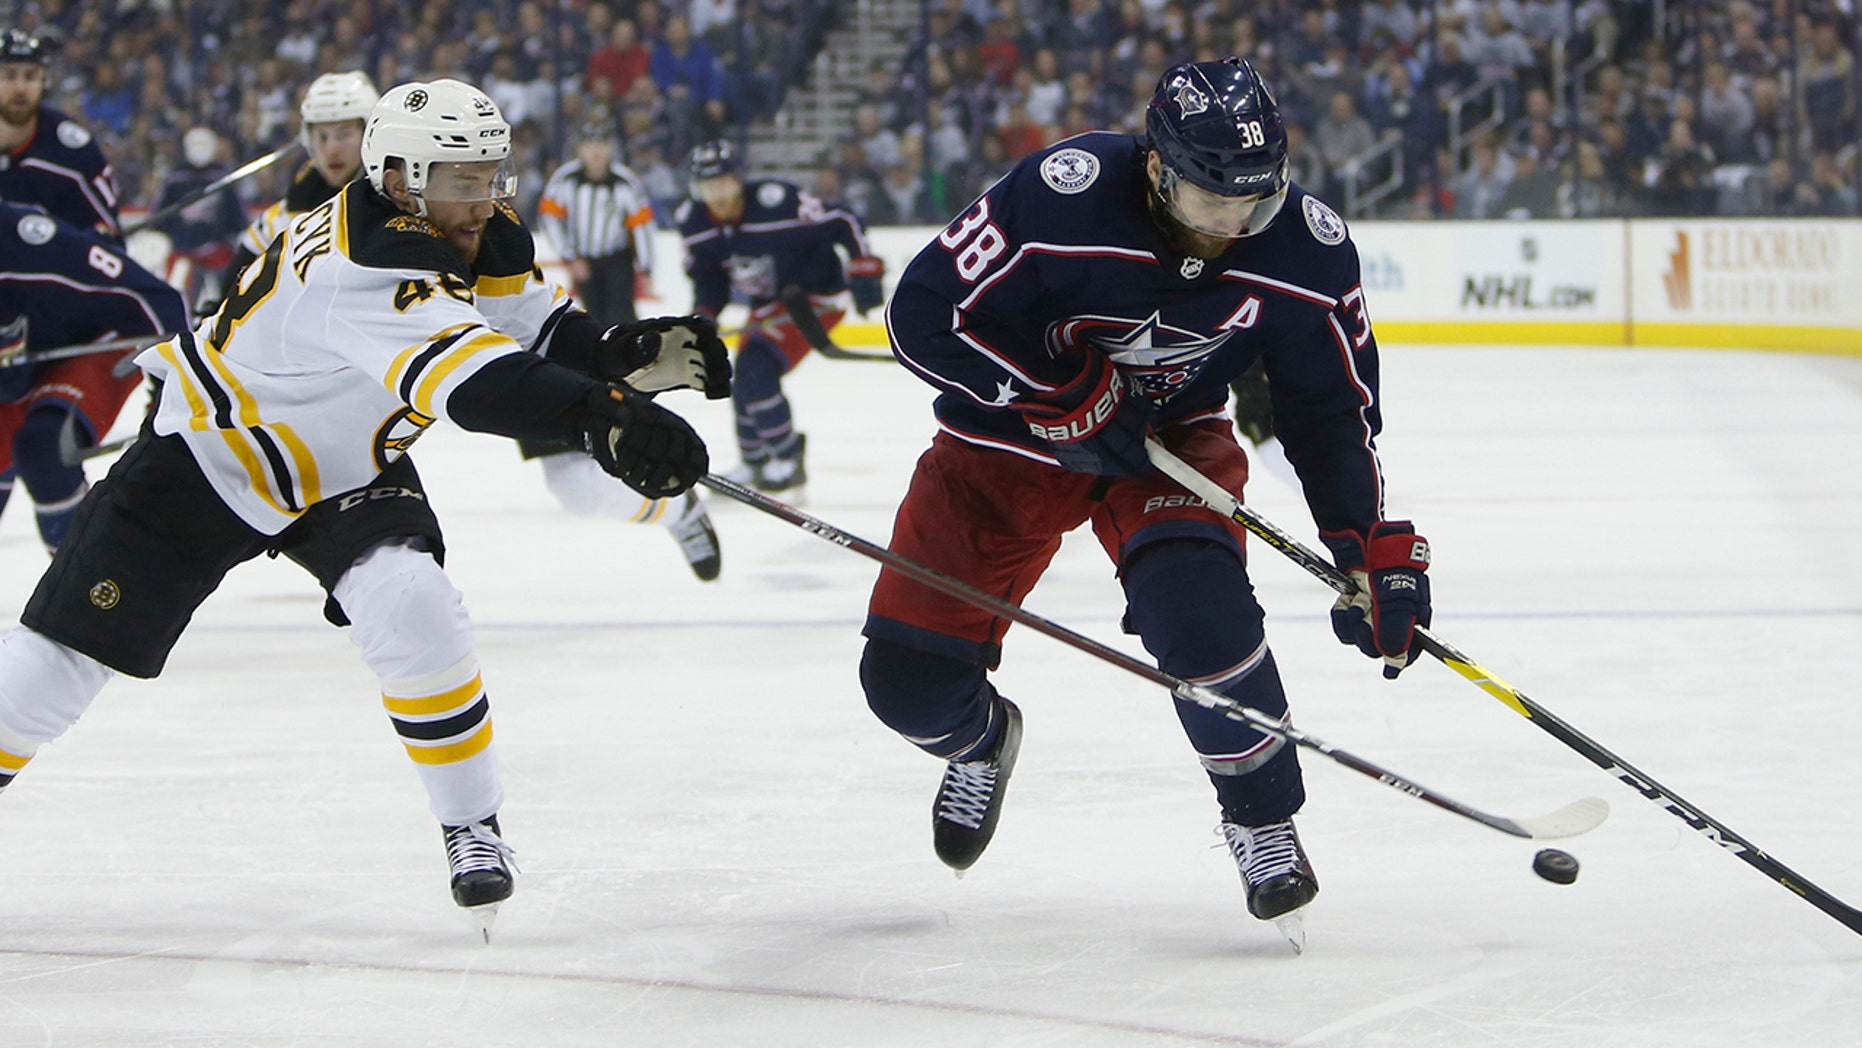 Columbus Blue Jackets' Boone Jenner, right, carries the puck up ice against Boston Bruins' Matt Grzelcyk during the second period of Game 3 of an NHL hockey second-round playoff series Tuesday, April 30, 2019, in Columbus, Ohio. (AP Photo/Jay LaPrete)